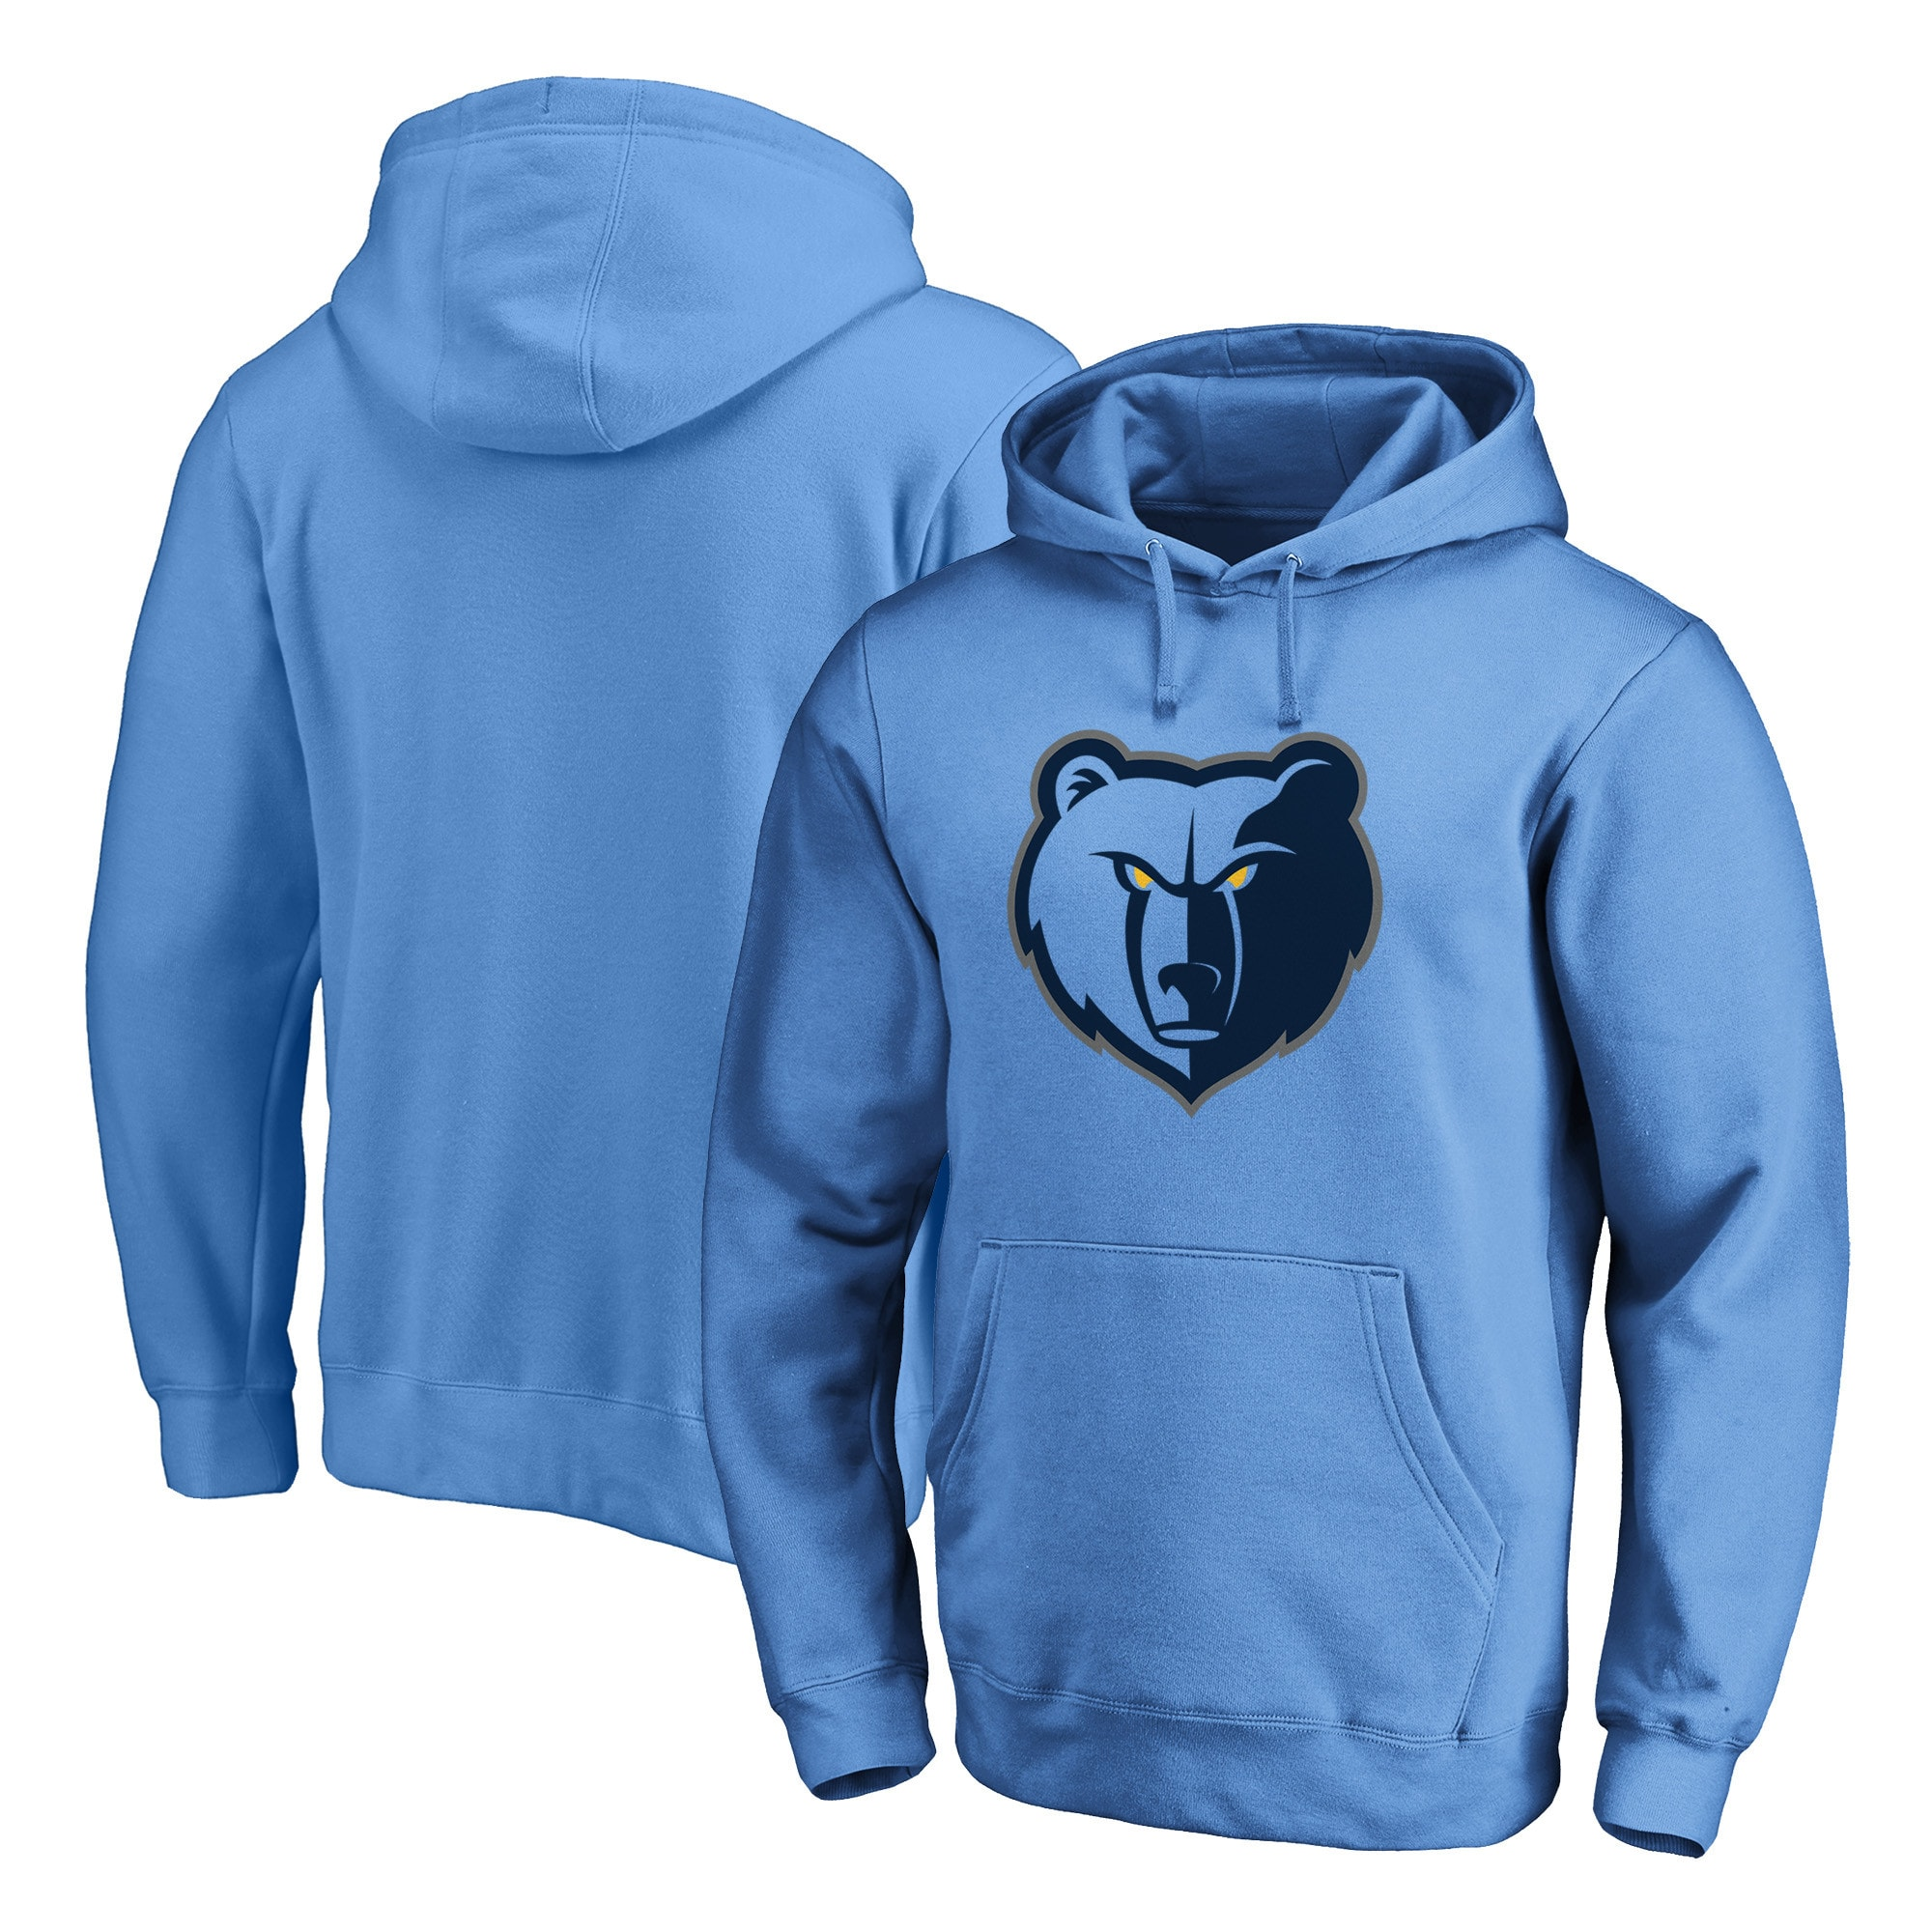 Memphis Grizzlies Fanatics Branded Primary Team Logo Pullover Hoodie - Light Blue